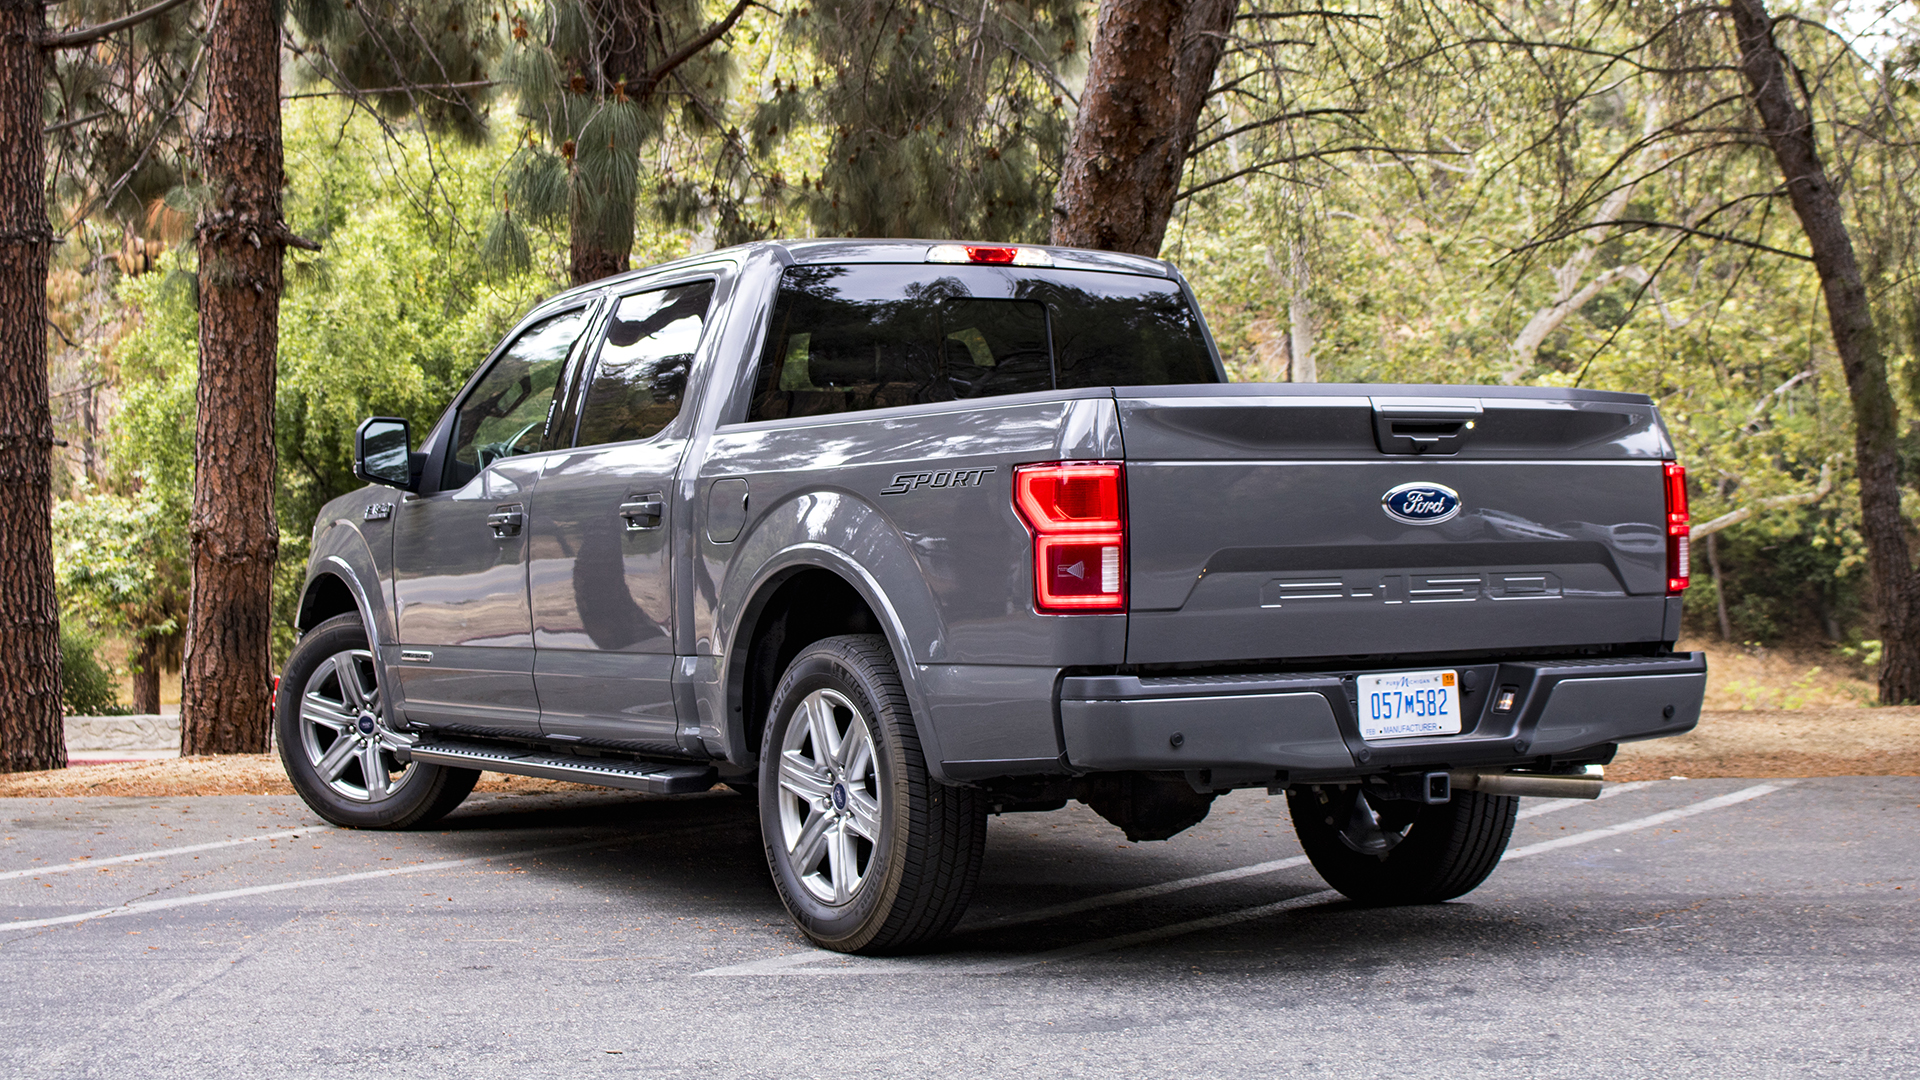 2018 ford f 150 diesel review how does 850 miles on a. Black Bedroom Furniture Sets. Home Design Ideas